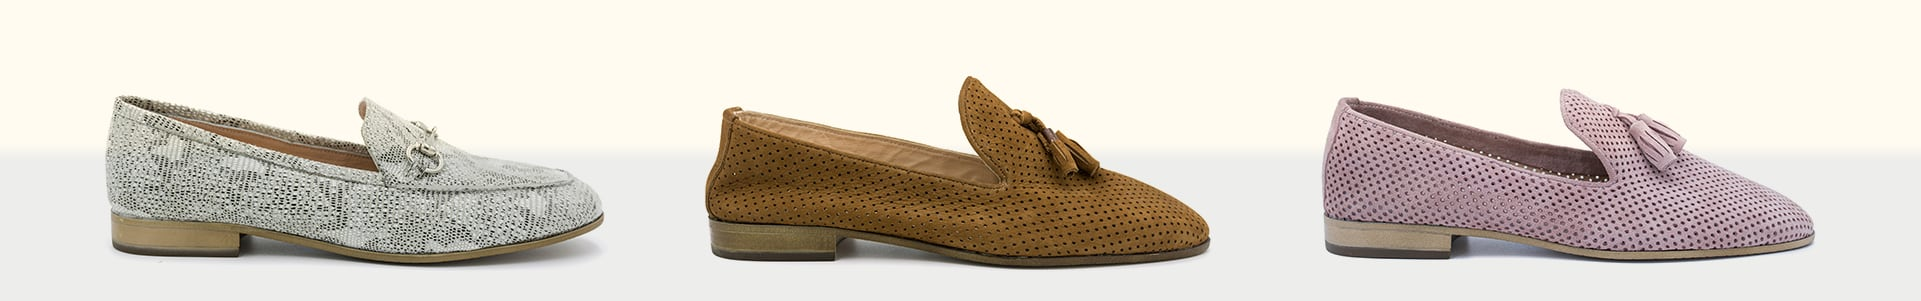 MOCCASINS & LOAFERS